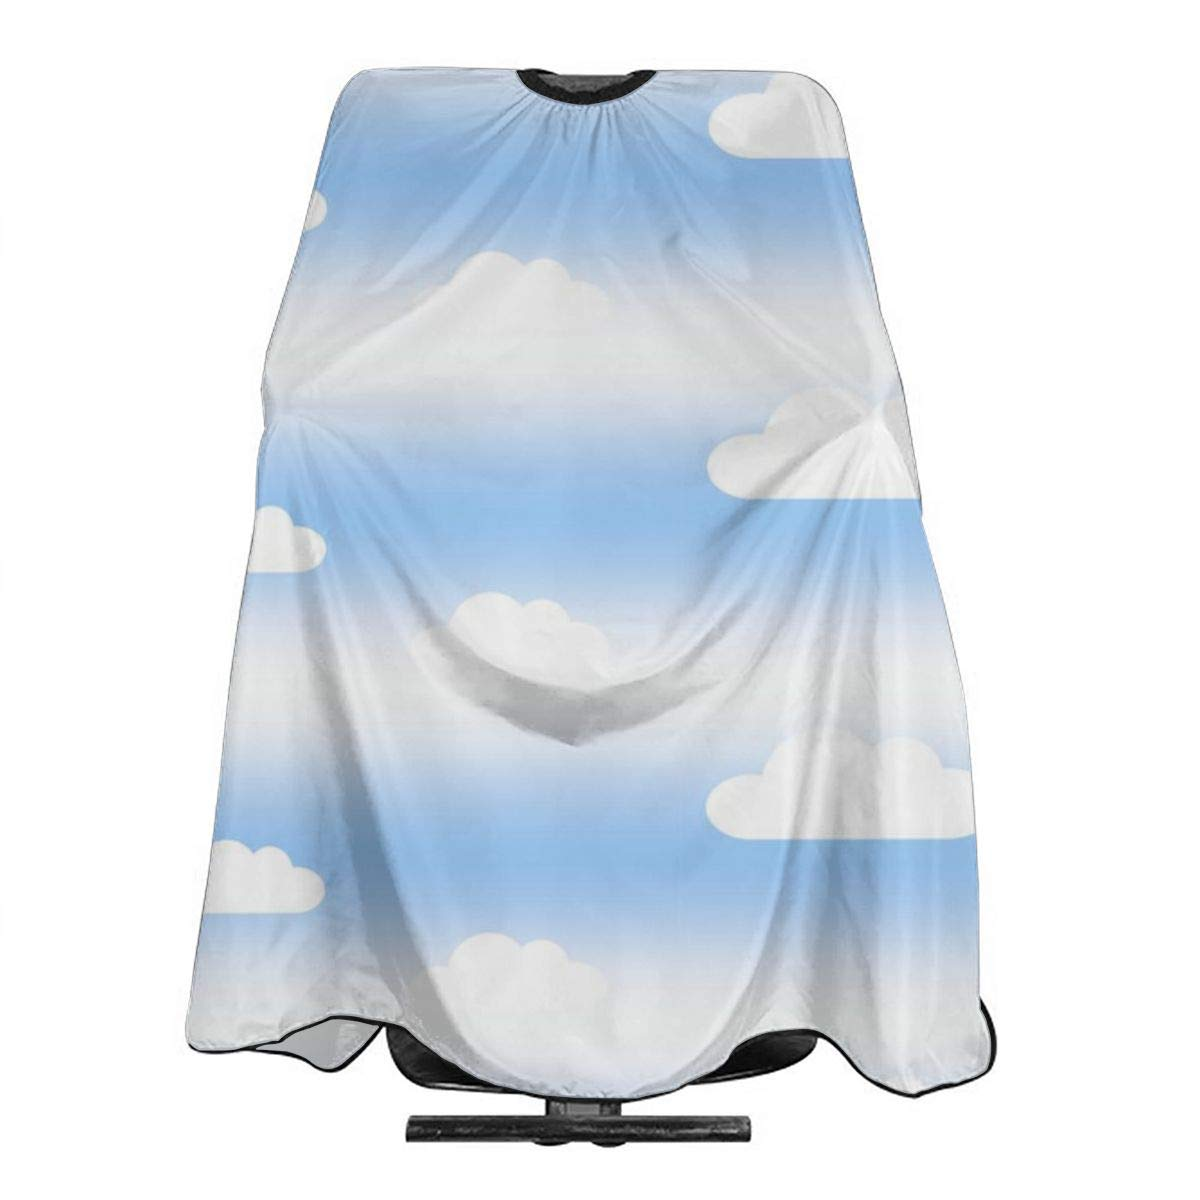 Professional Barber Cape Salon Hair Styling Cutting Haircut Aprons Sky Cloud Striped Capes For Proof Hairdresser Coloring Perming Shampoo Chemical 55